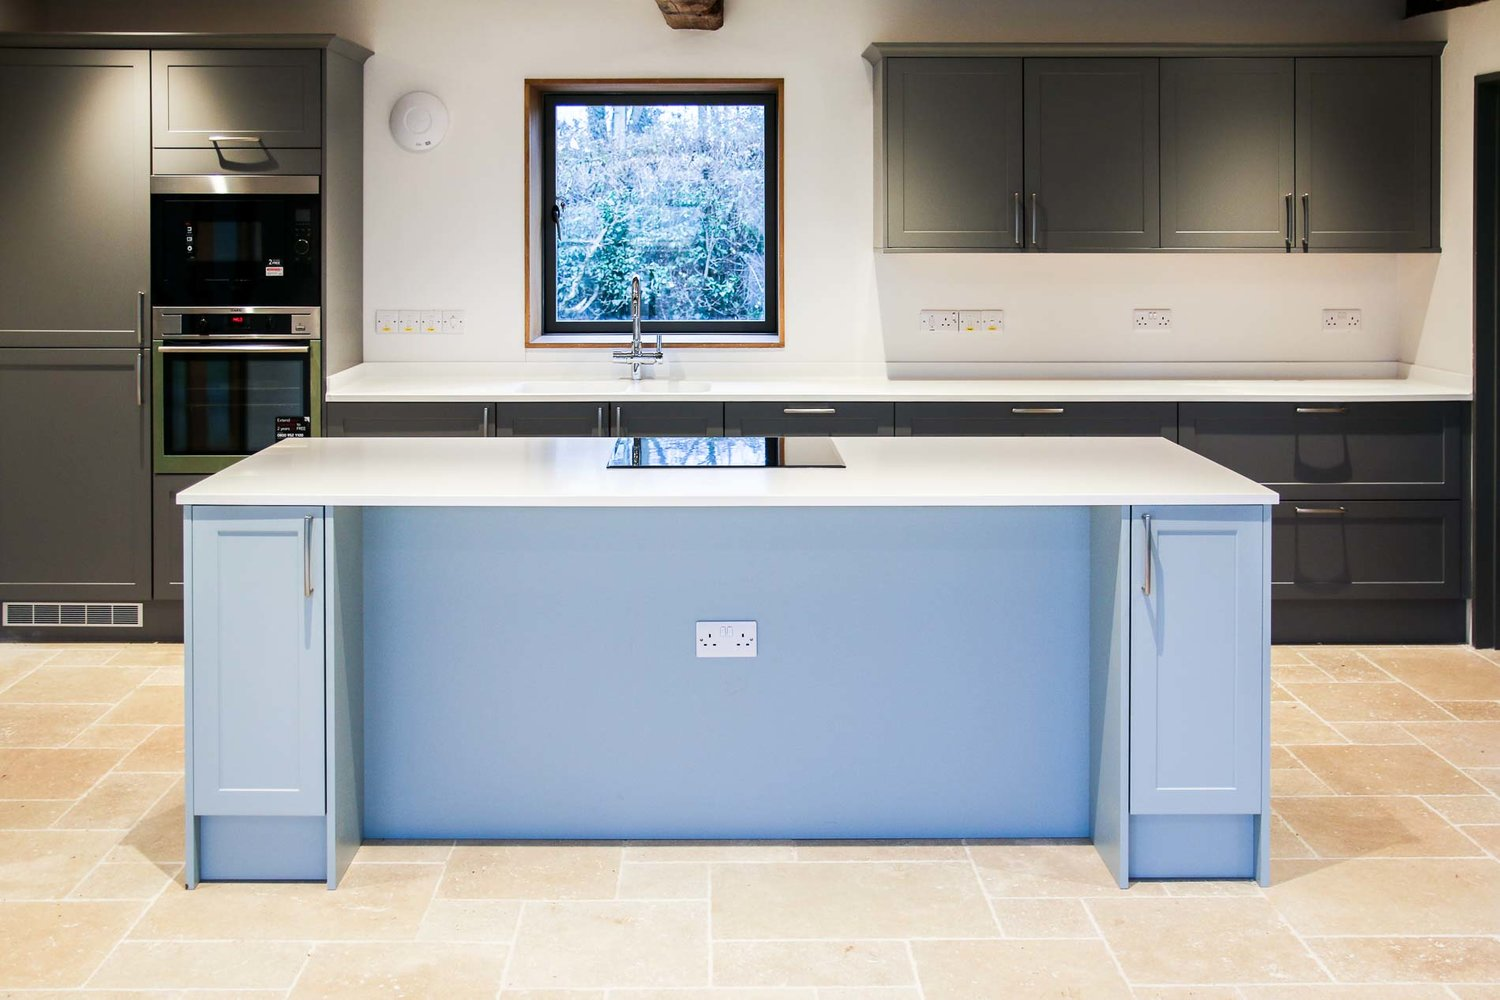 JDW Joinery